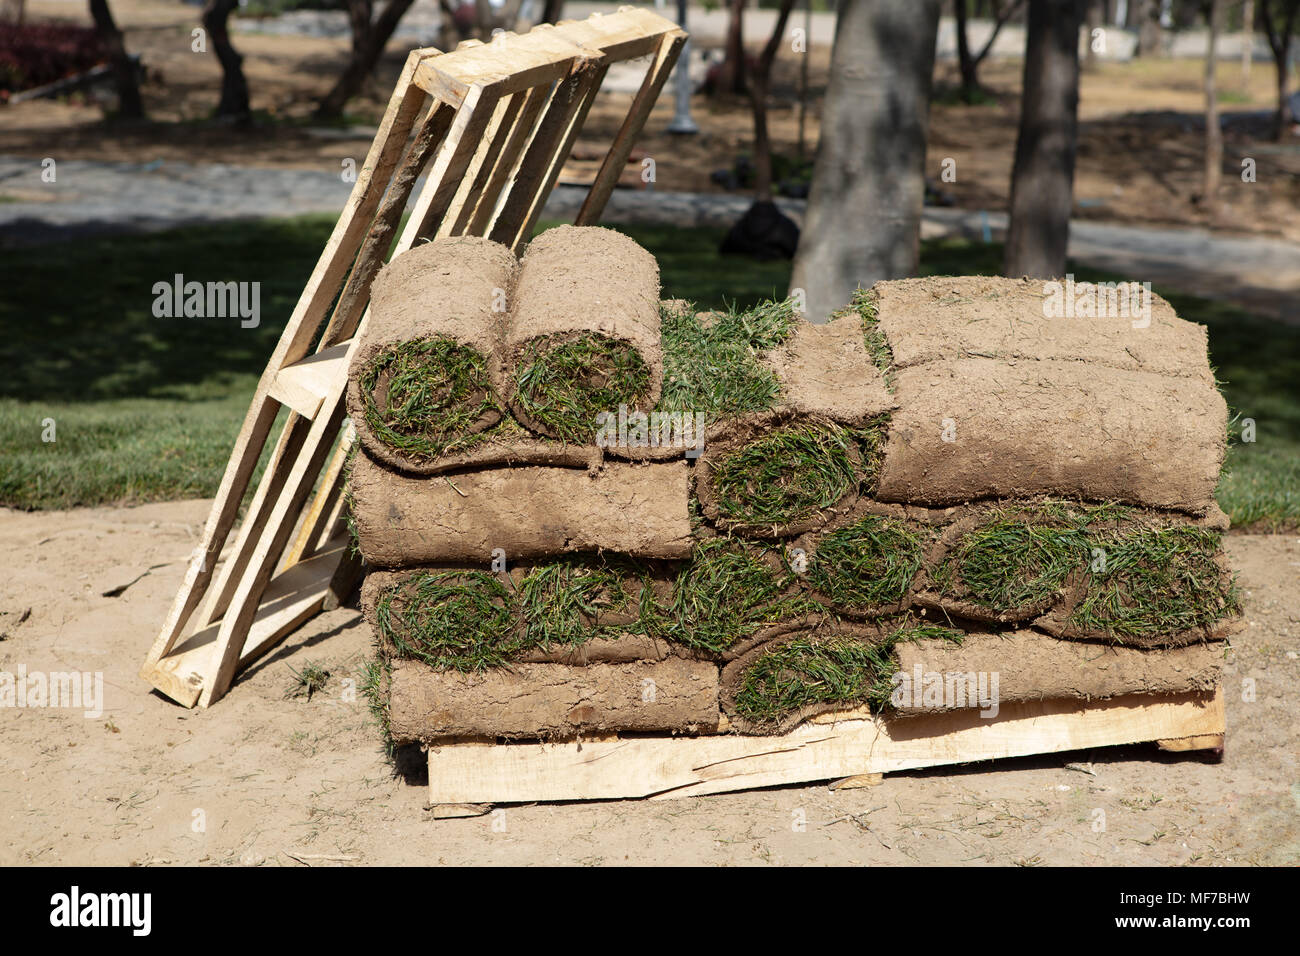 Grass Turfs Rolls On The wooden Pallet Preparing To New Grass Installation - Stock Image